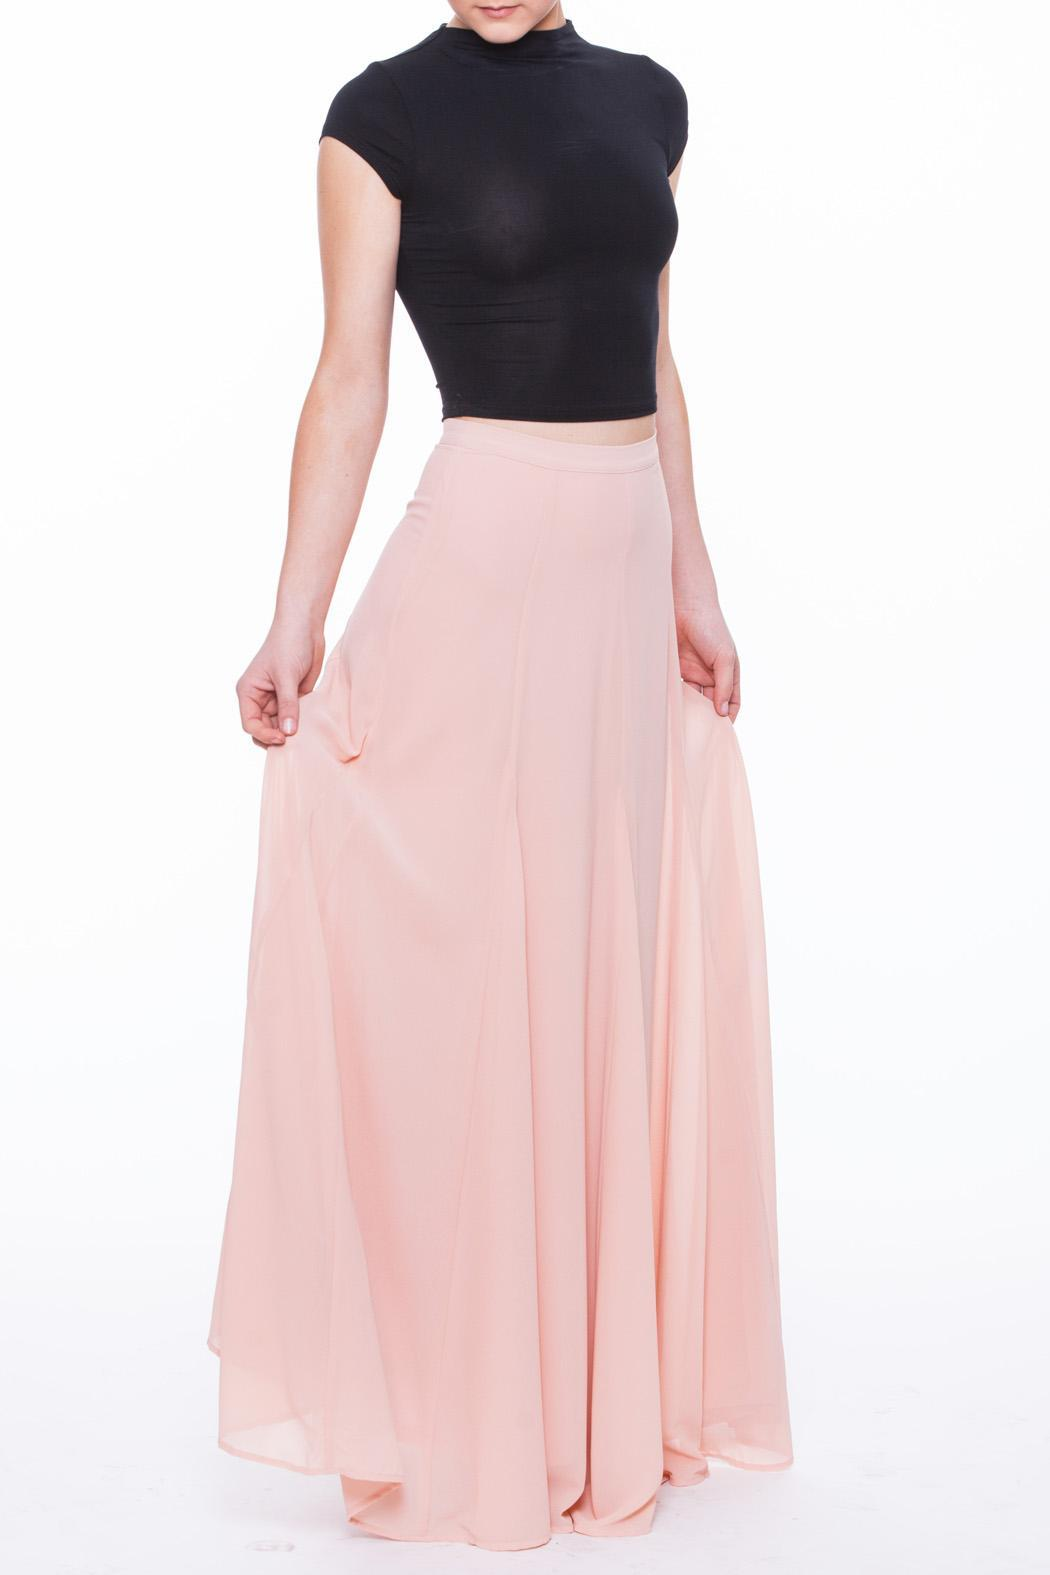 Champagne & Strawberry Blush Maxi Skirt from South Carolina by ...